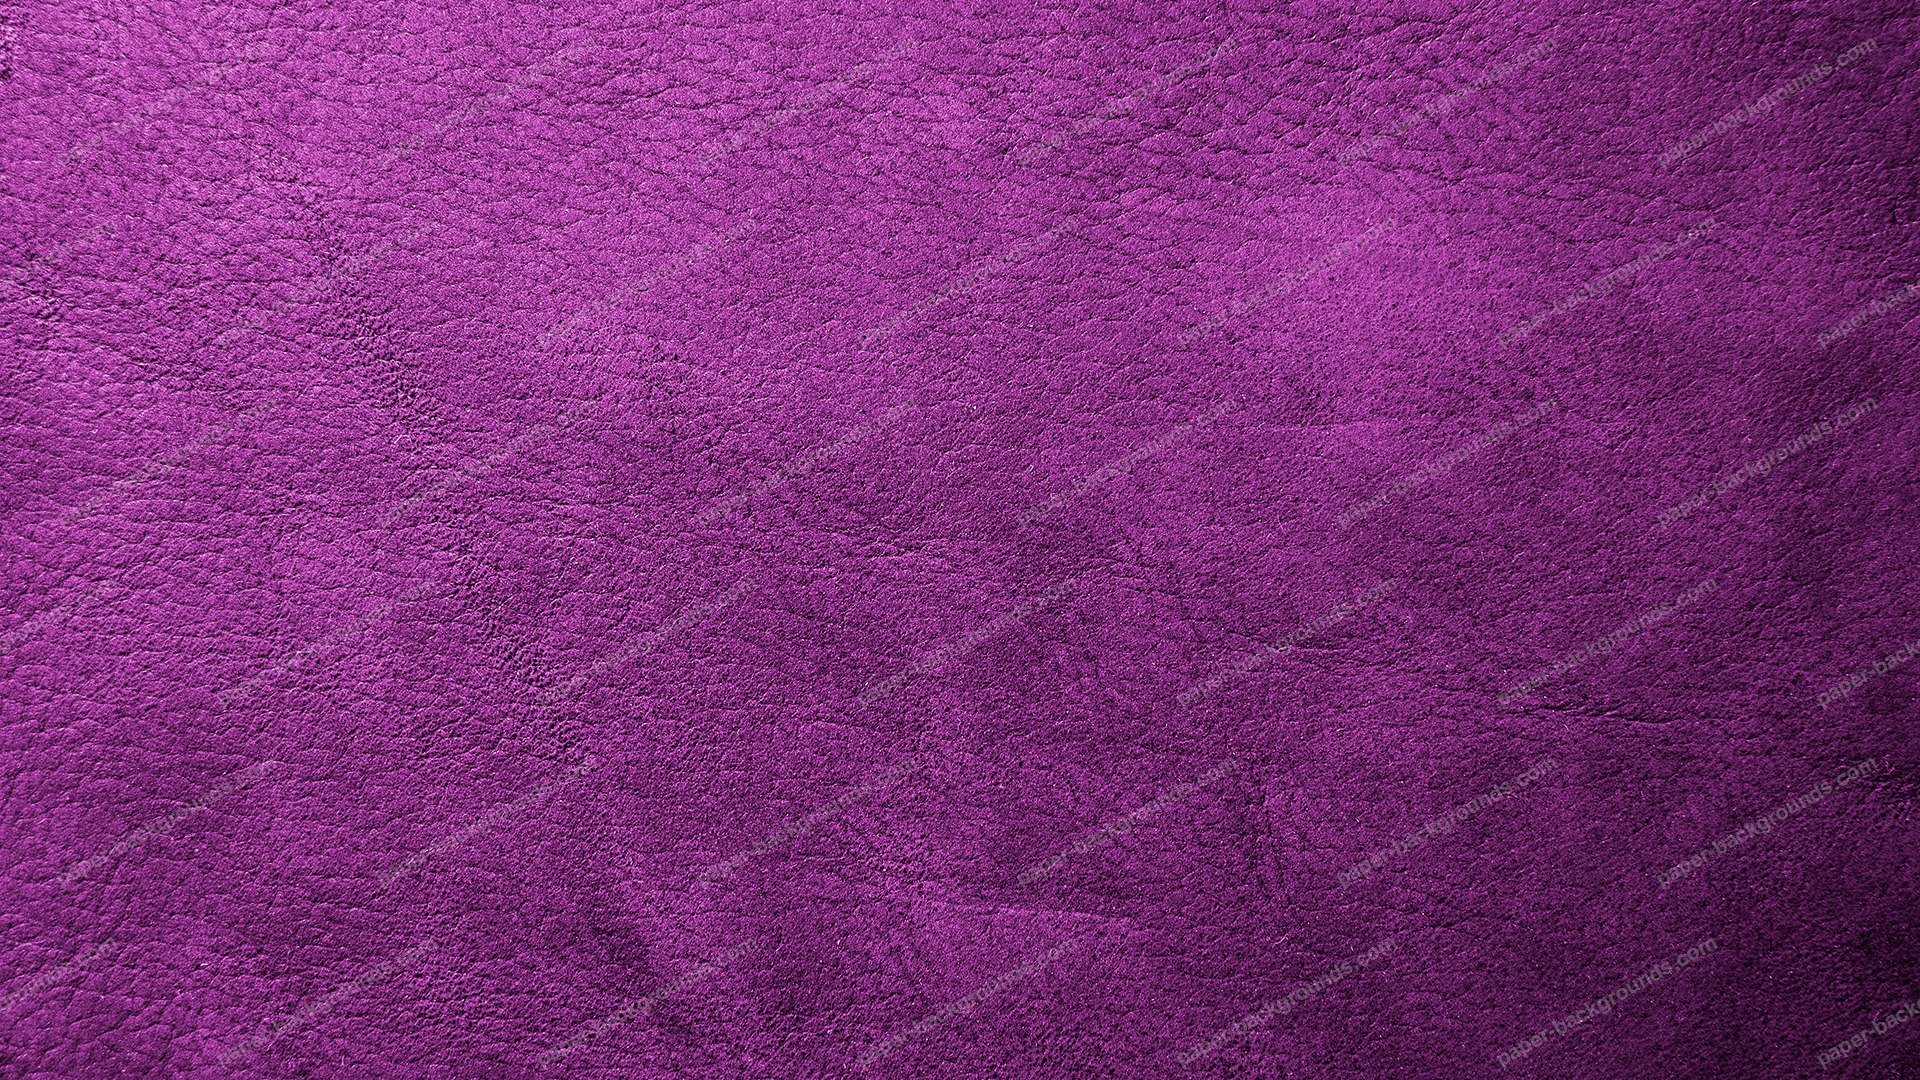 Purple Leather Texture Background HD 1920 x 1080p